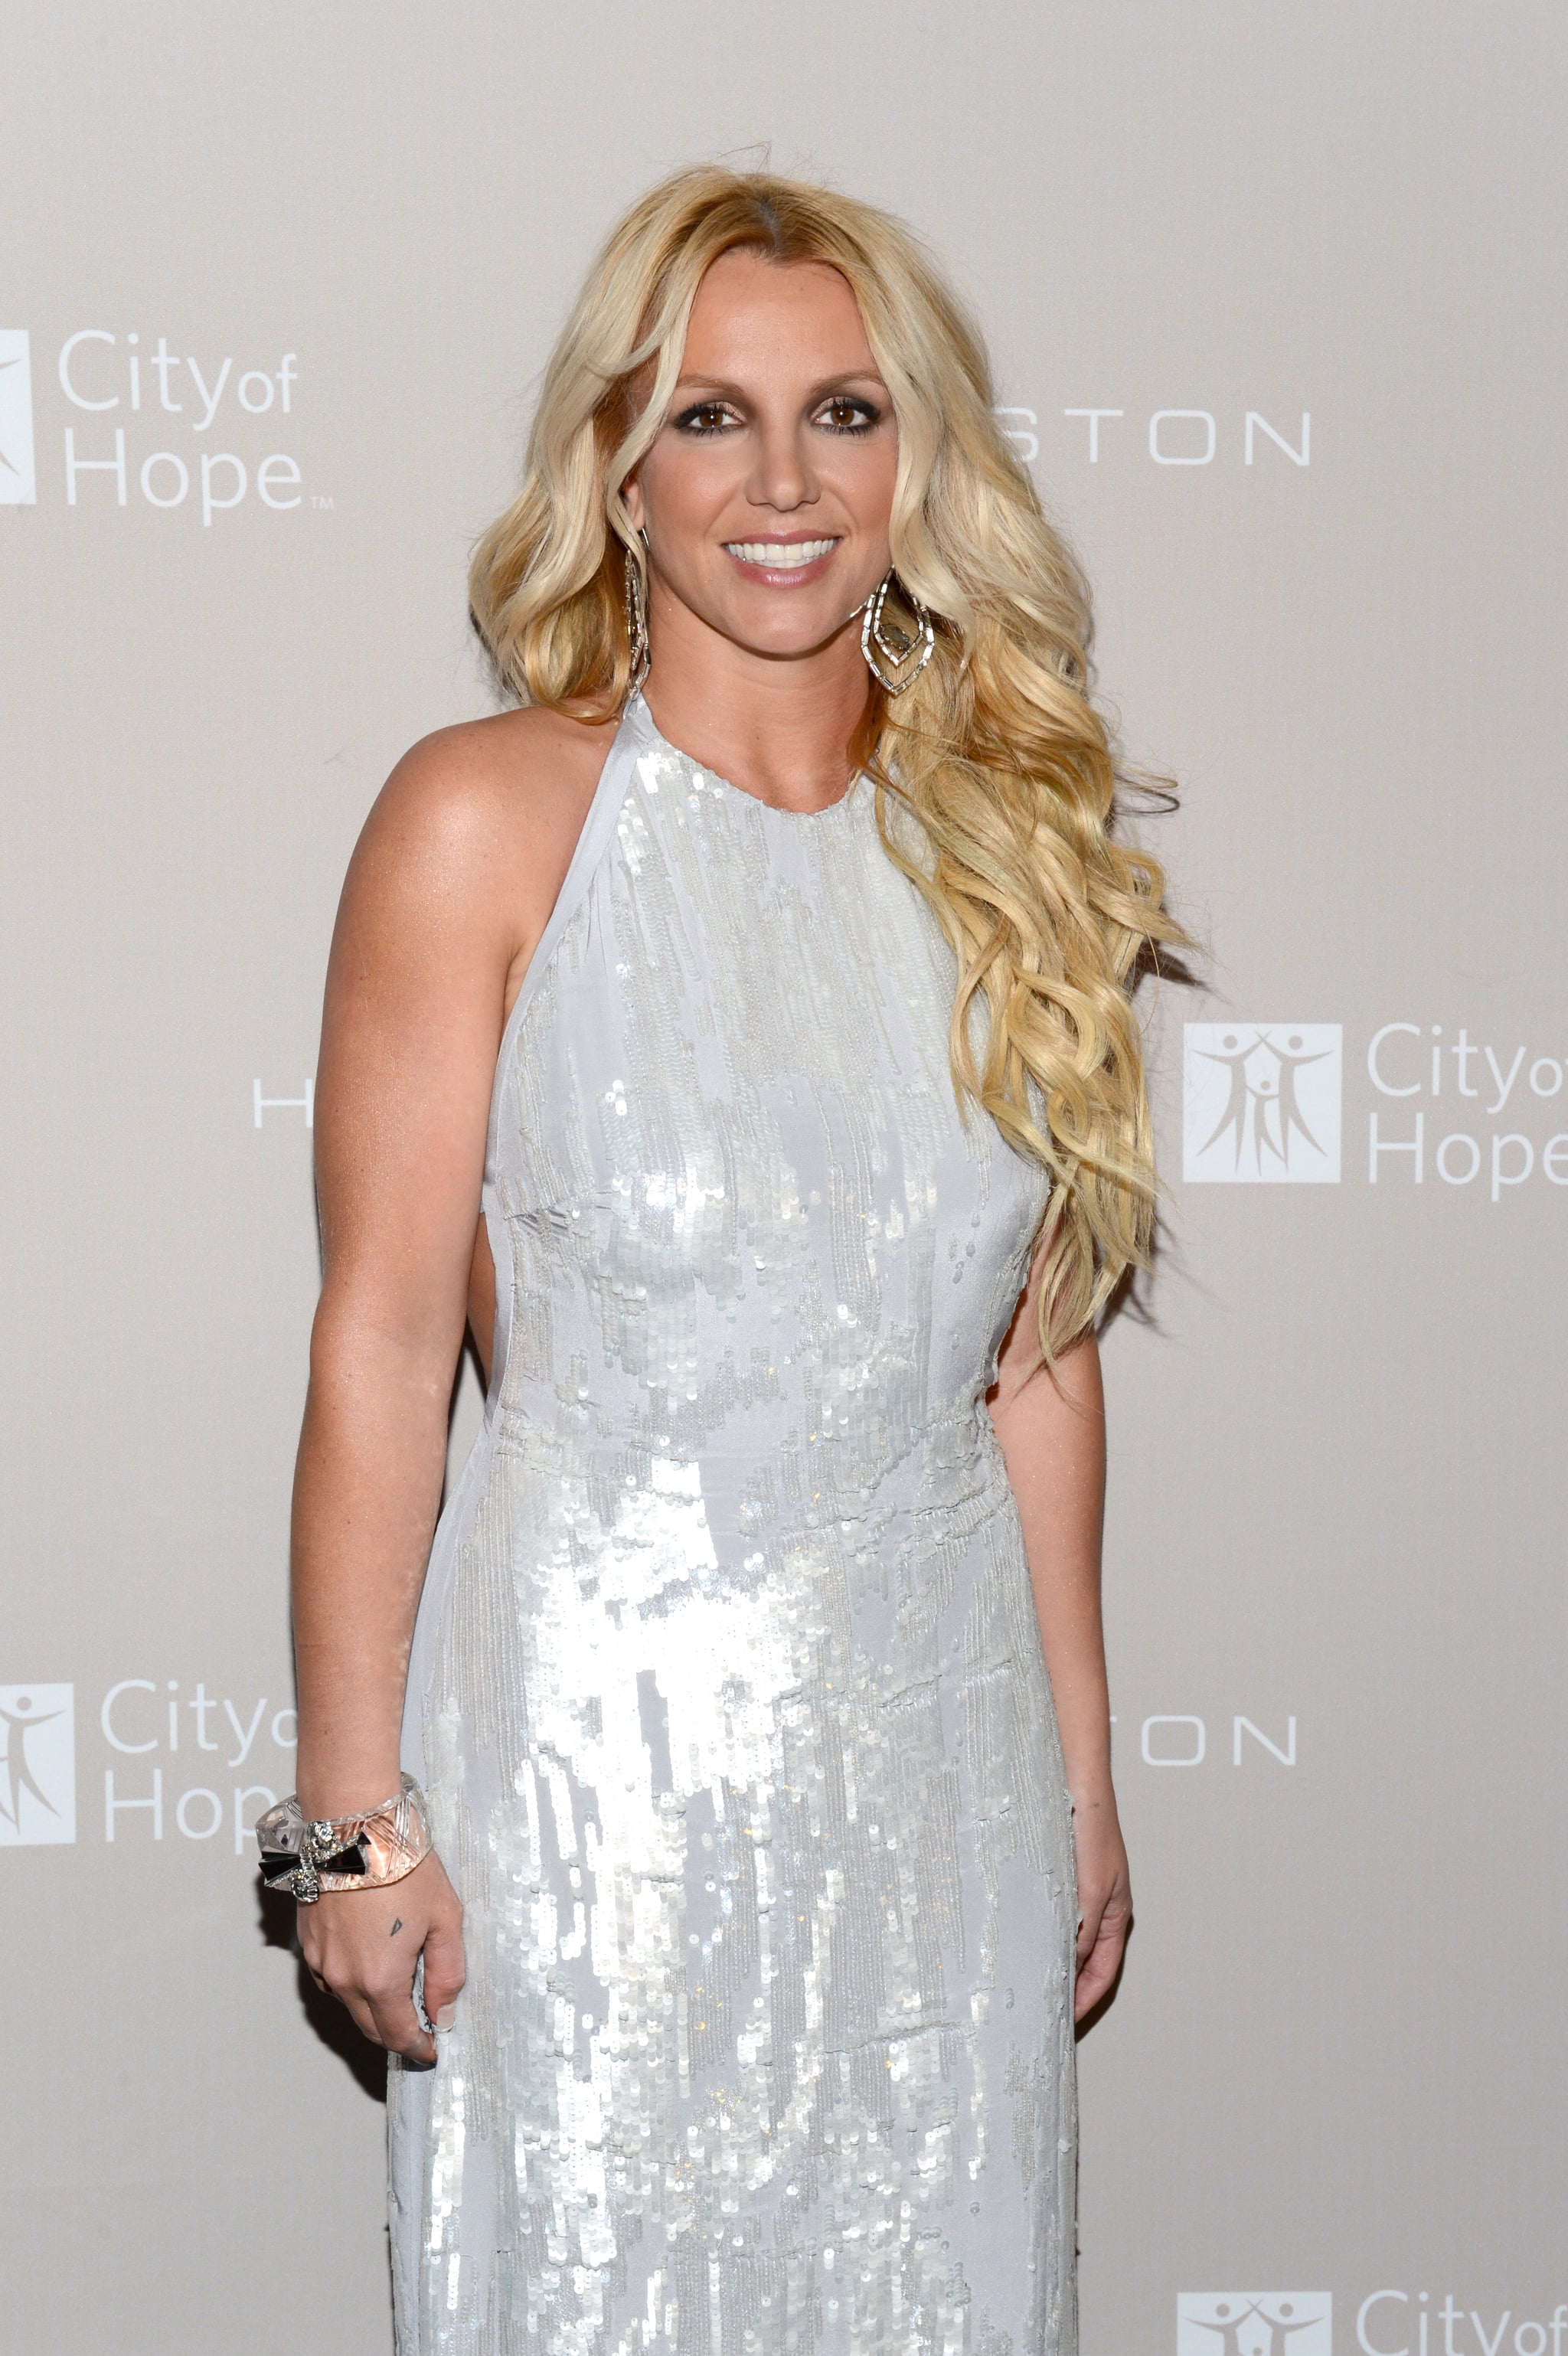 Britney Spears posed for photos at the City of Hope charity's gala in LA.